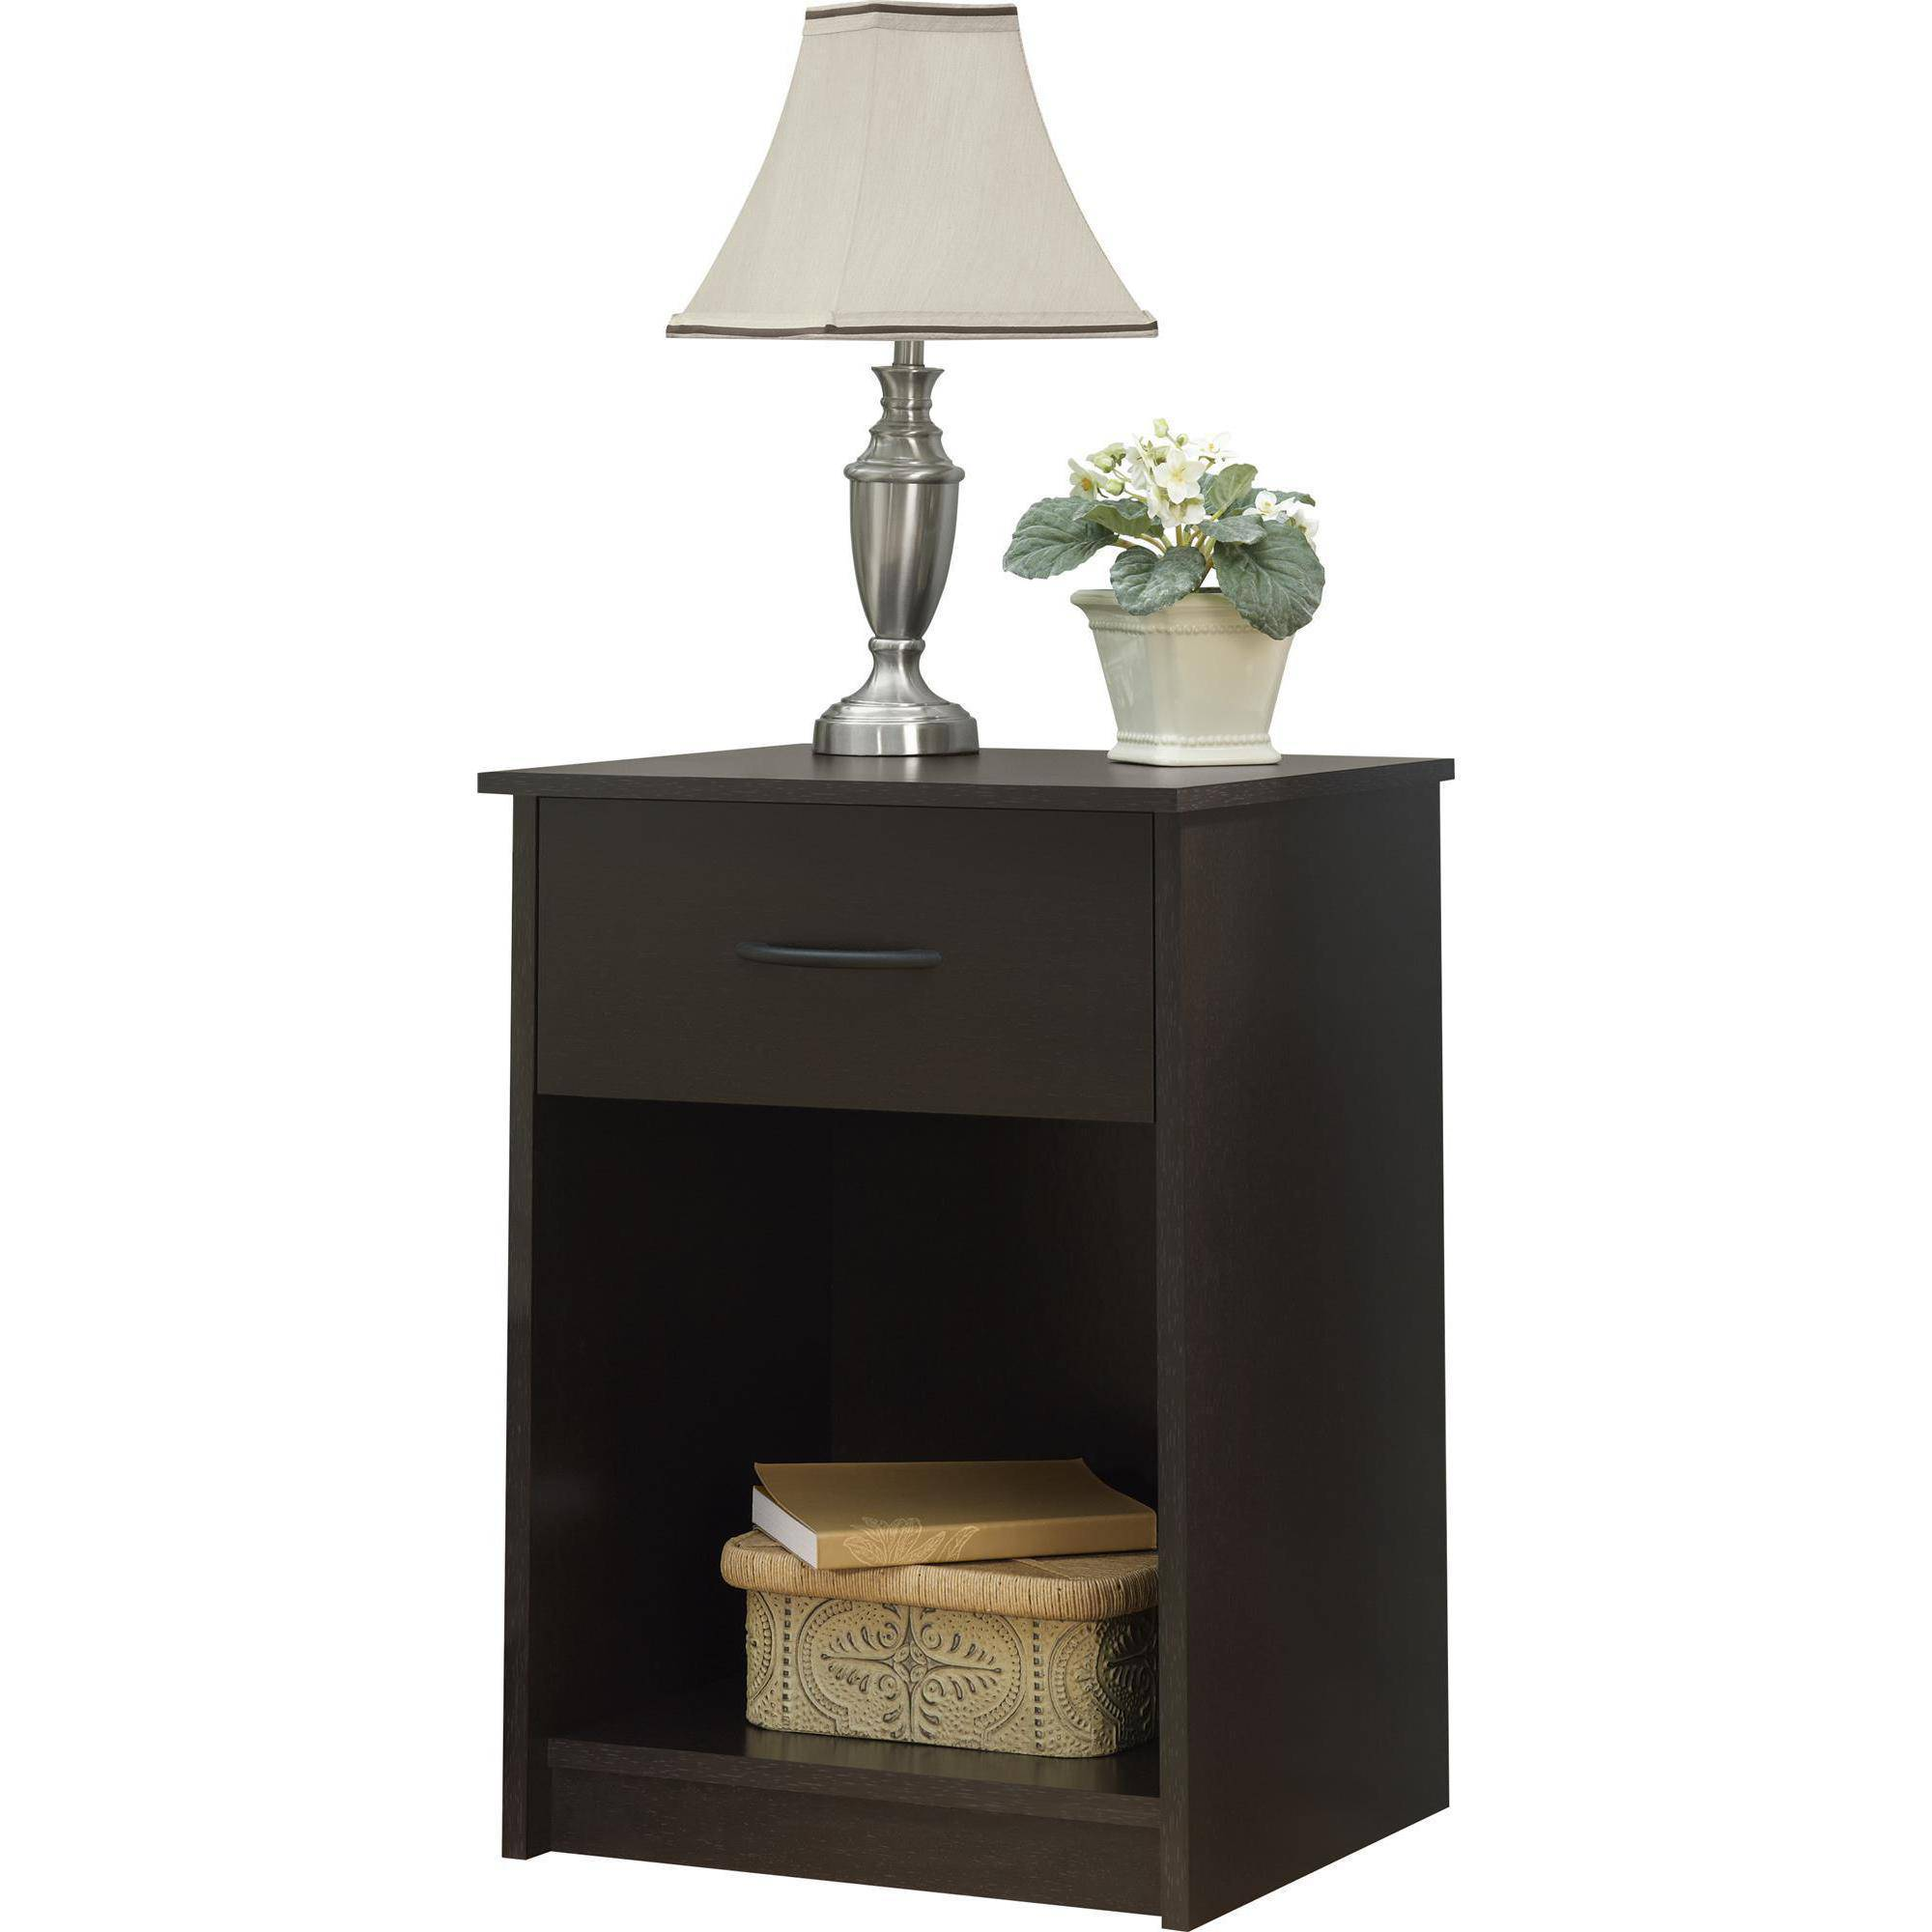 Merveilleux Mainstays 1 Drawer Nightstand / End Table, Espresso   Walmart.com